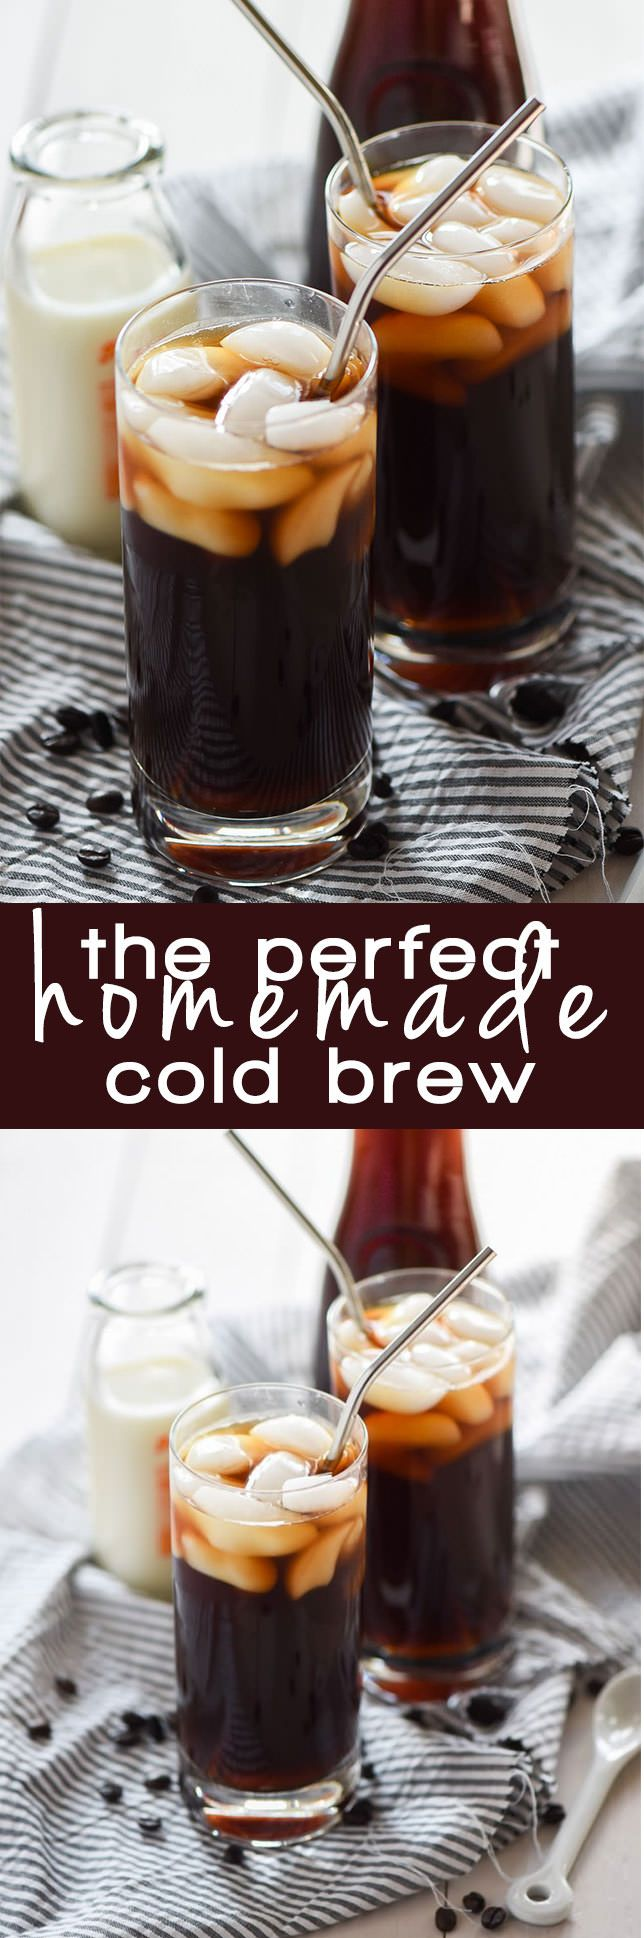 Homemade Cold Brewed Coffee Recipe Homemade iced